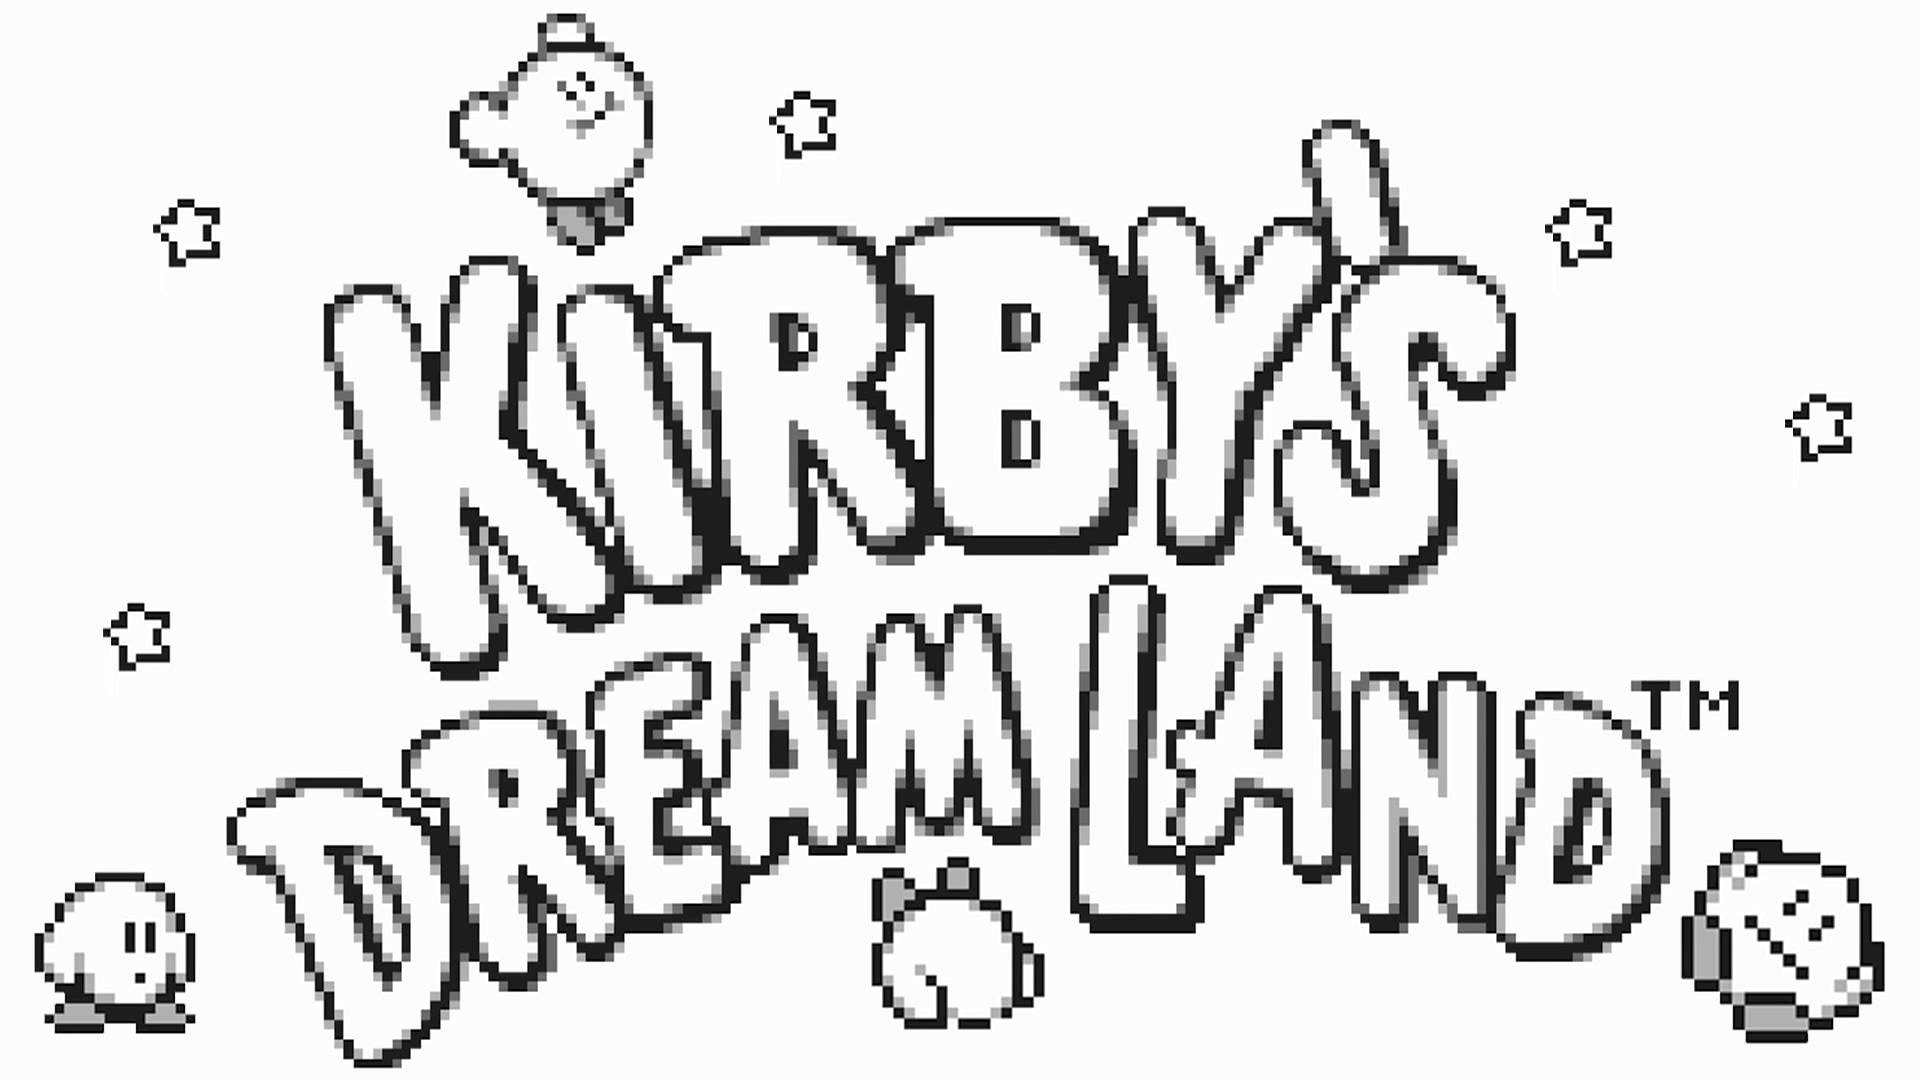 Green Greens (OST Version) - Kirby's Dream Land